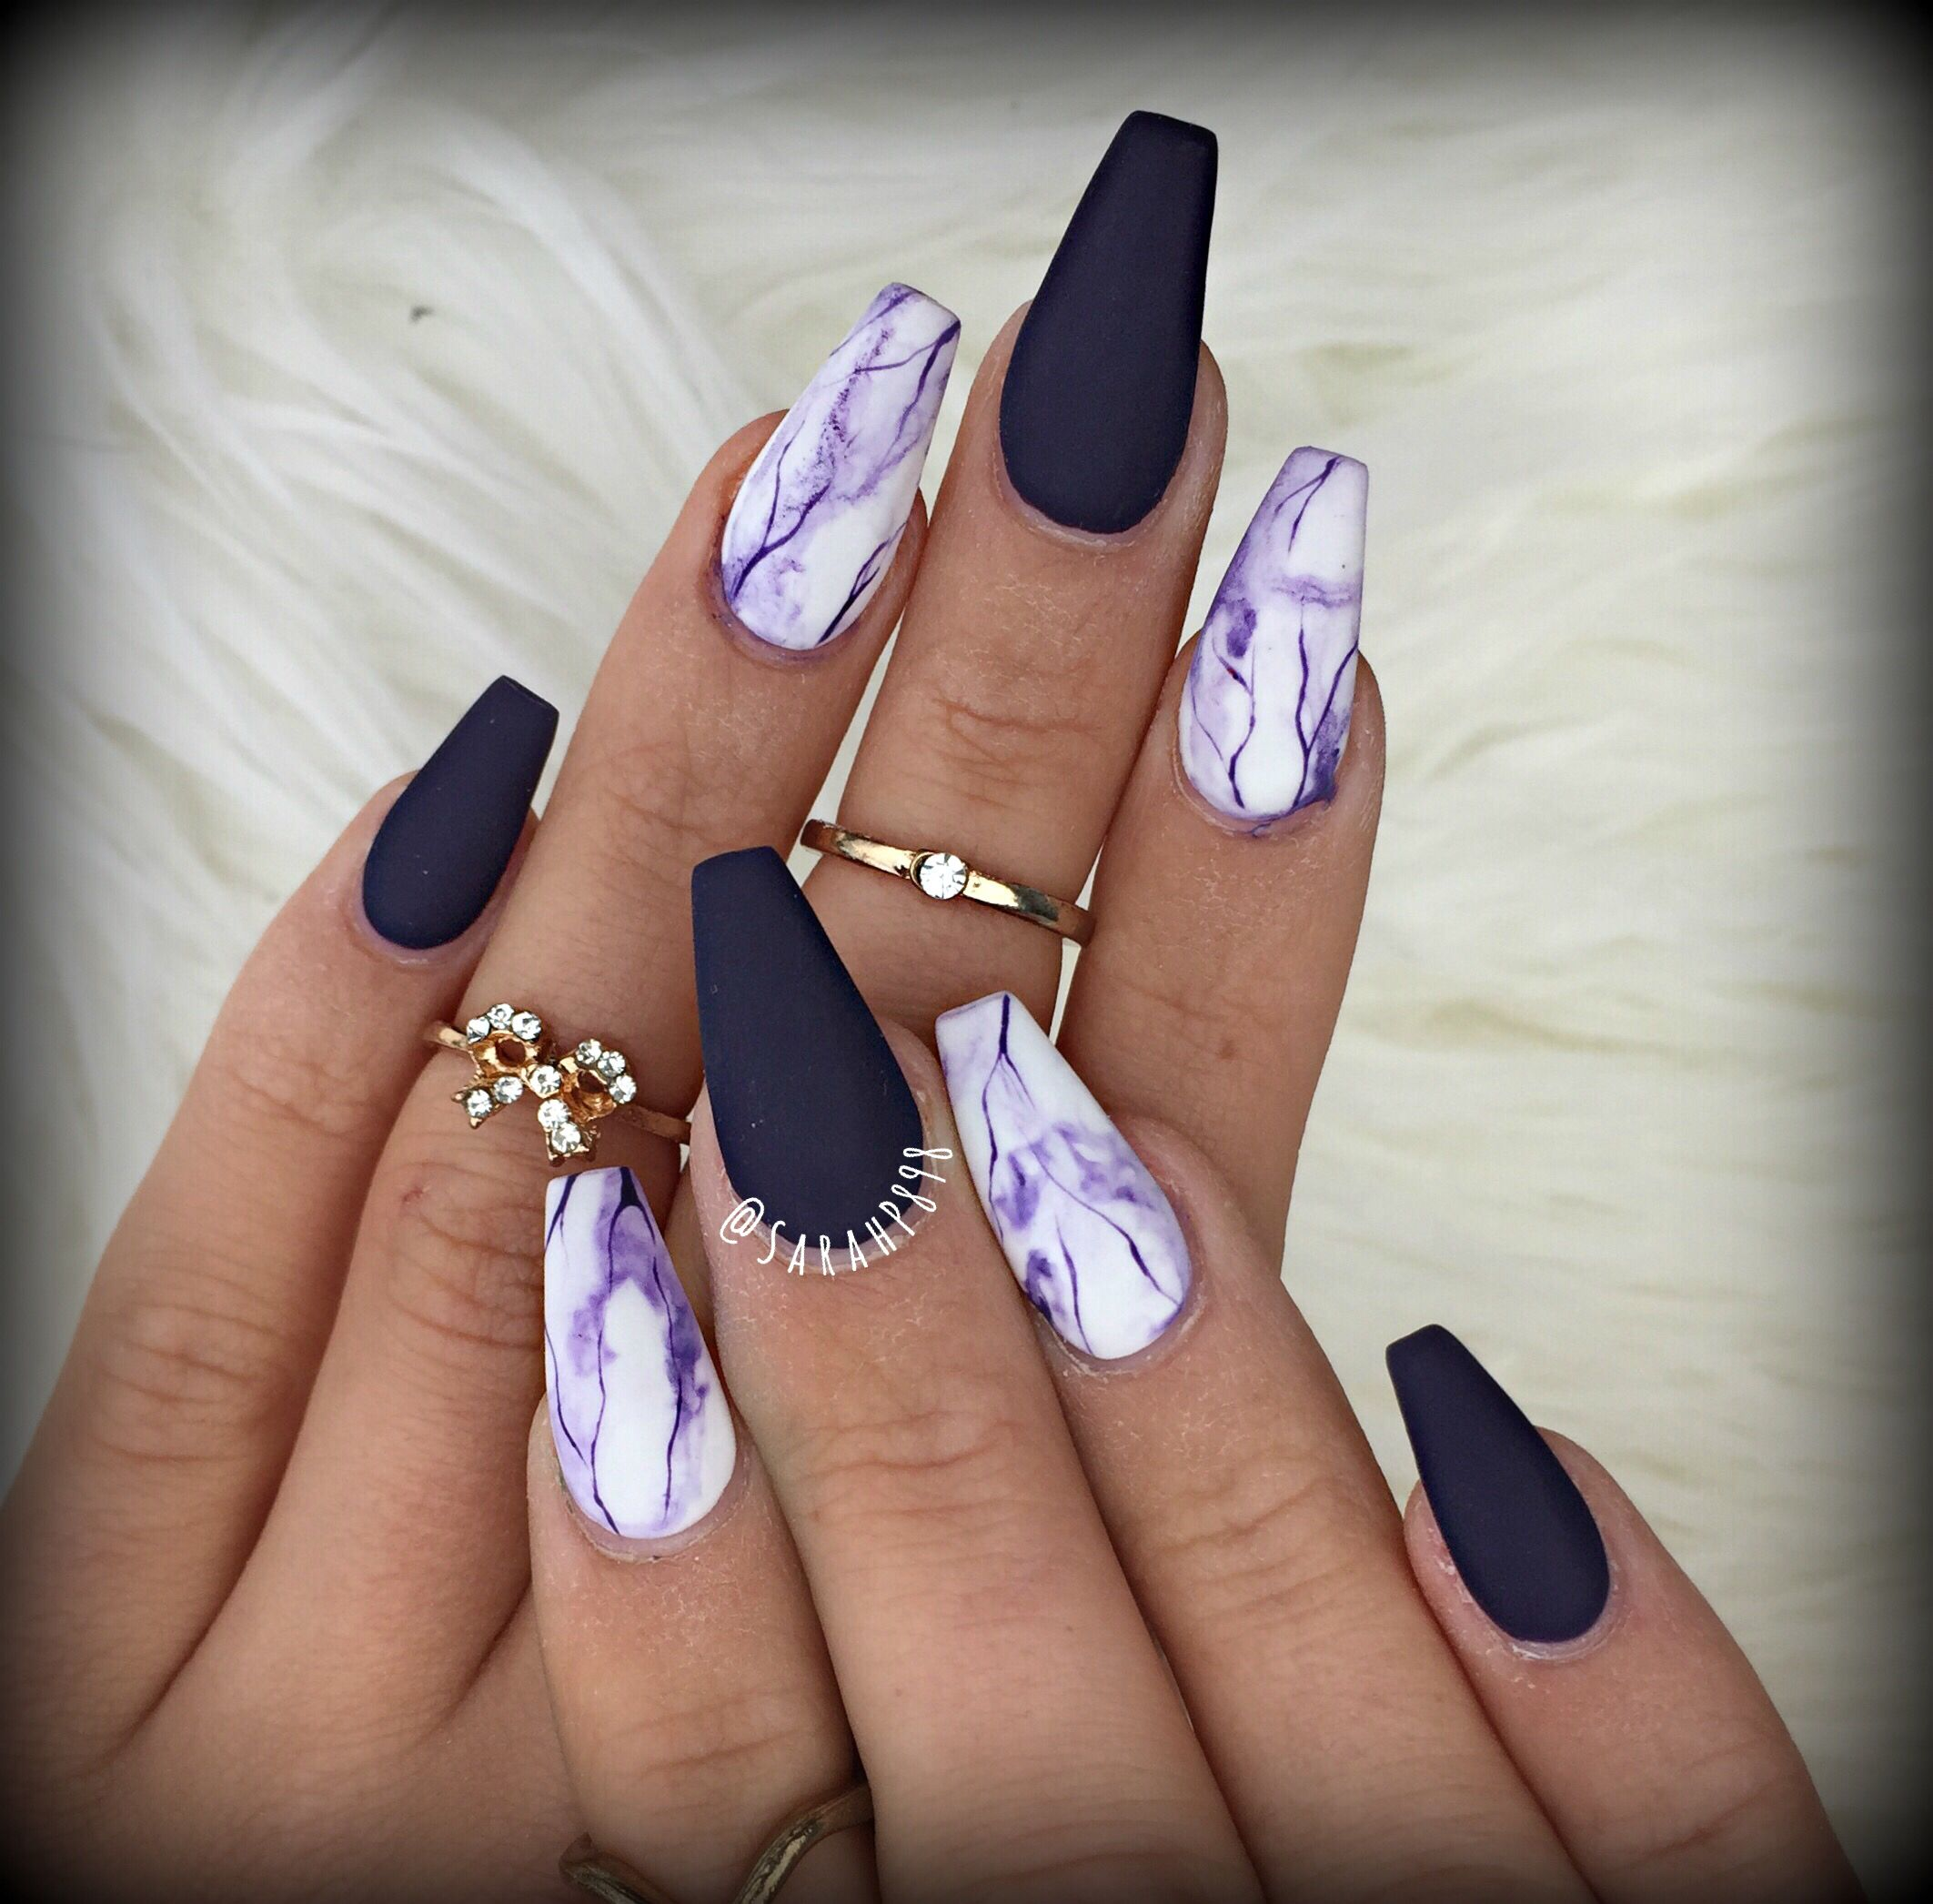 Nail art | Gel Nail Polish | Pinterest | Matte purple nails, Purple ...